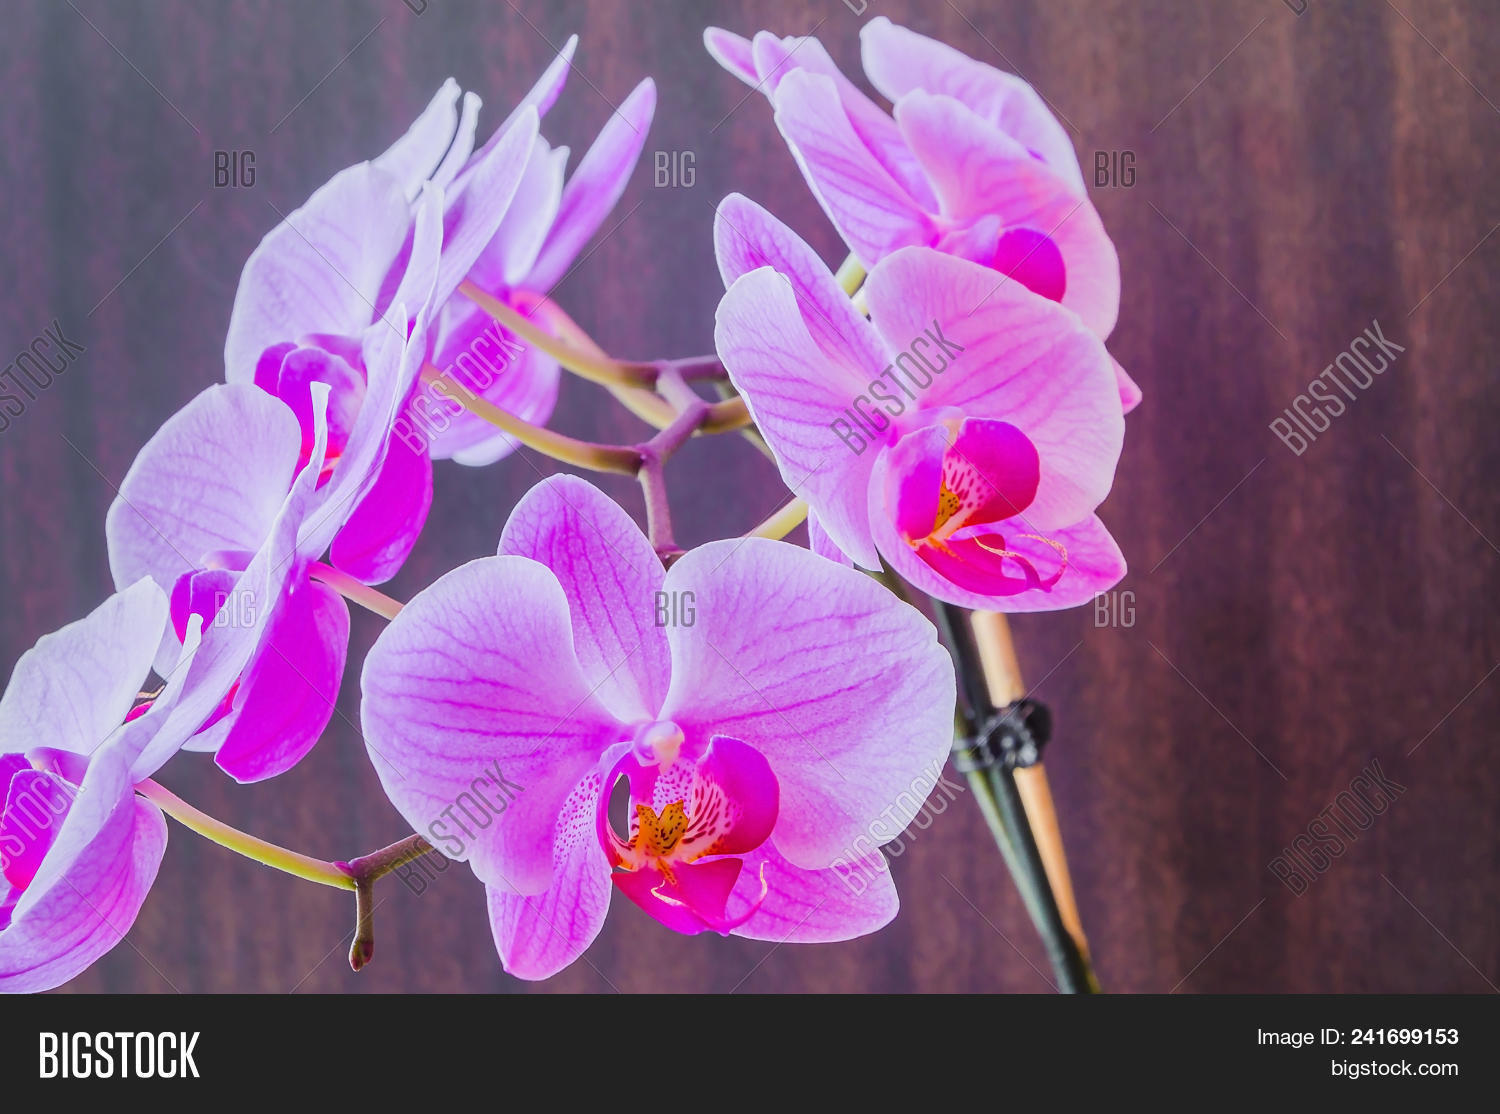 Bright Beautiful Image Photo Free Trial Bigstock